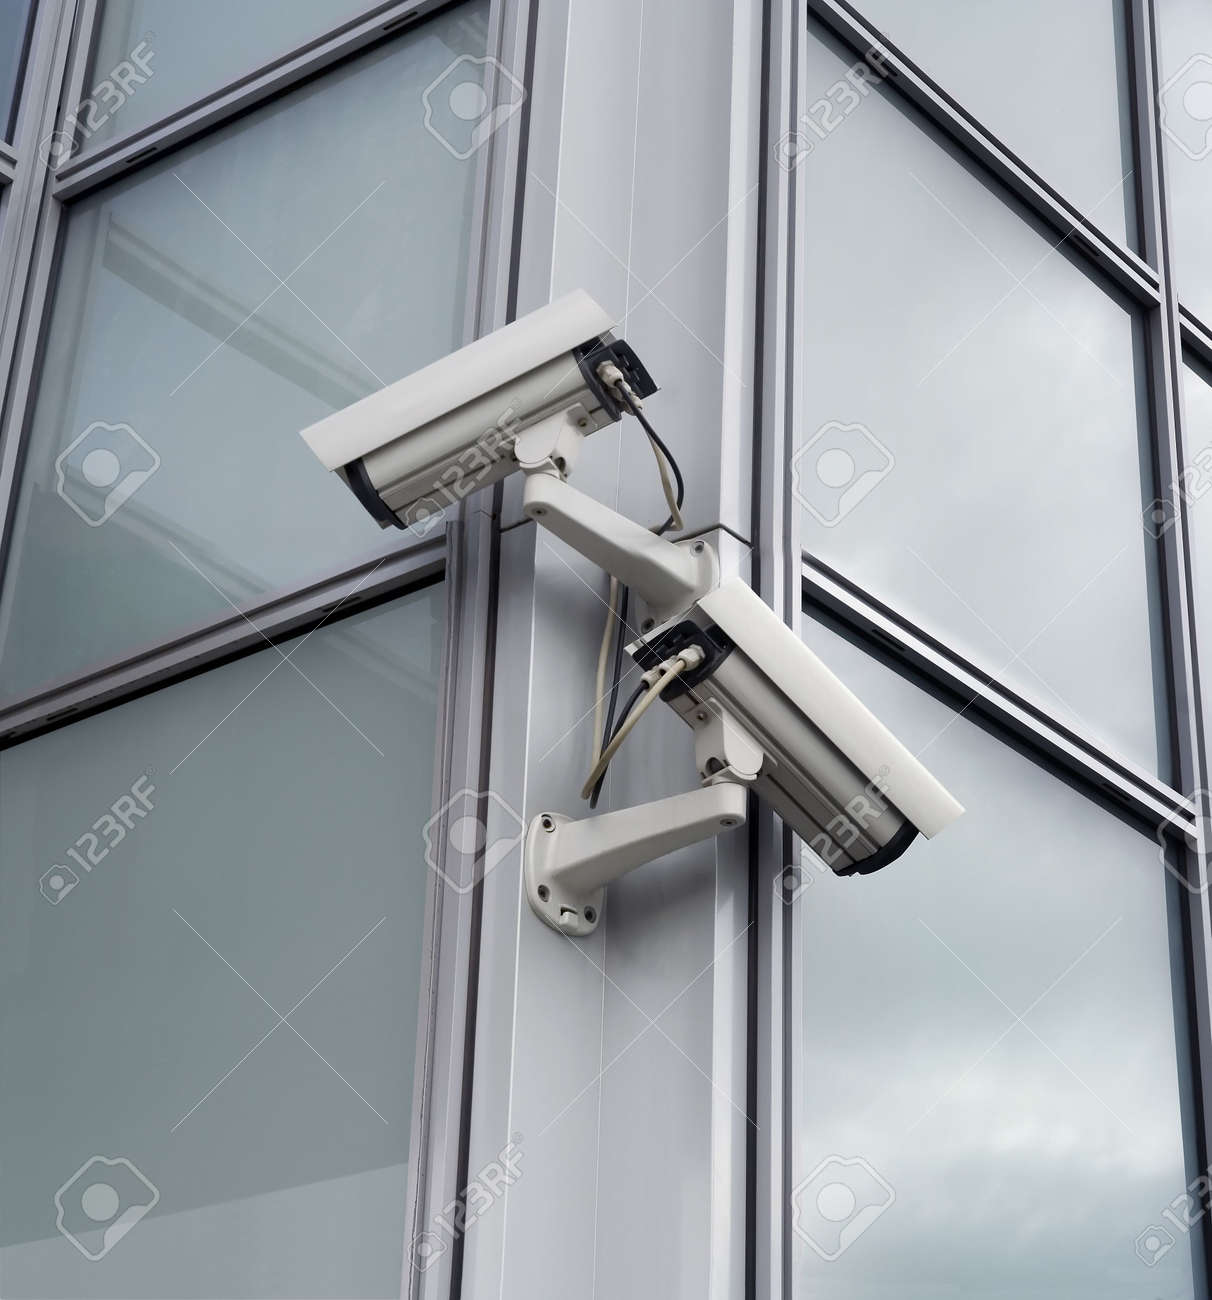 Two security cameras attached on building corner Stock Photo - 962779